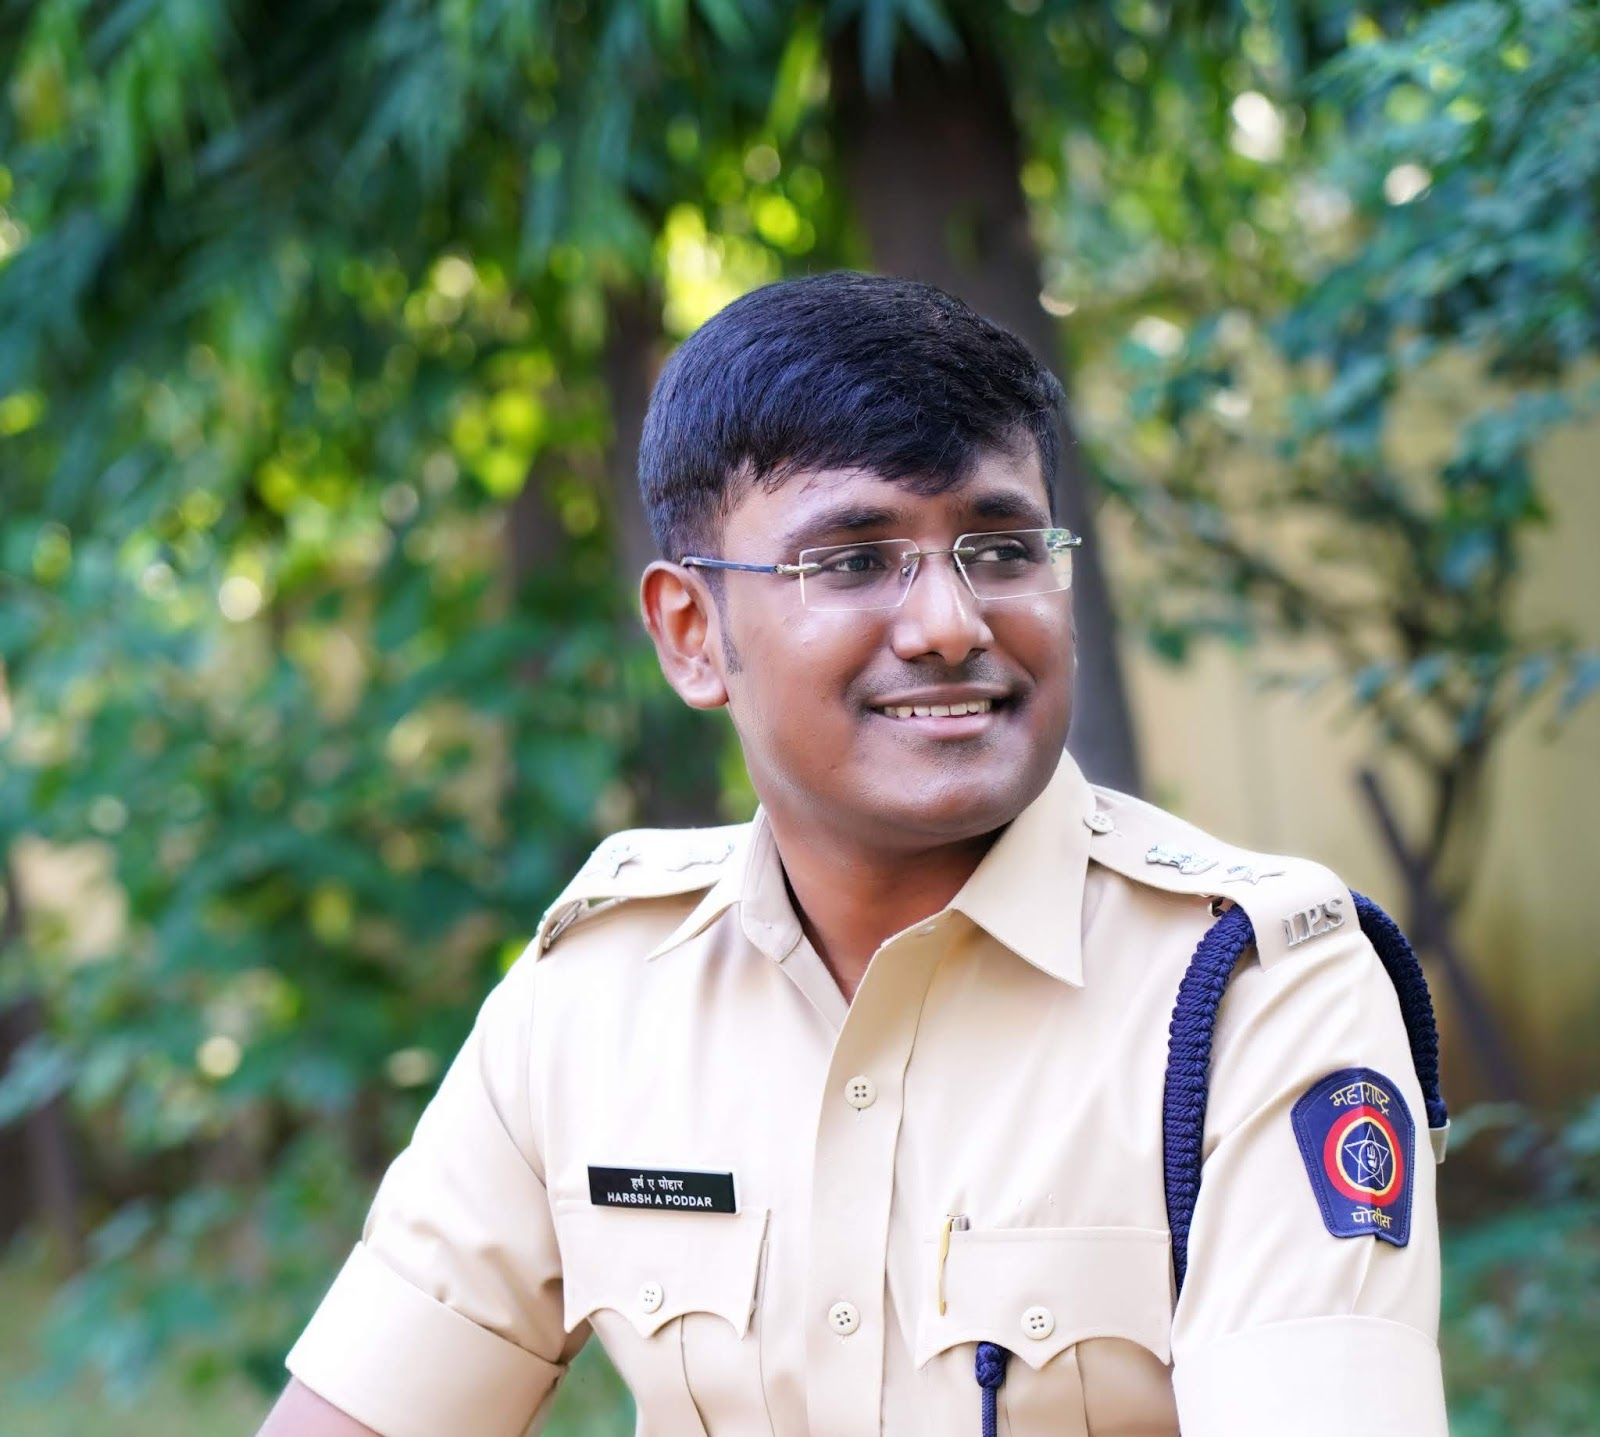 harsh poddar ips wikipedia, harsh poddar ips biography, harsh poddar ips education, harsh poddar upsc, what is youth parliament competition, youth parliament championship, आयपीएस हर्ष पोद्दार, युथ पार्लमेंट चॅम्पिअनशिप, हर्ष पोद्दार मराठी माहिती